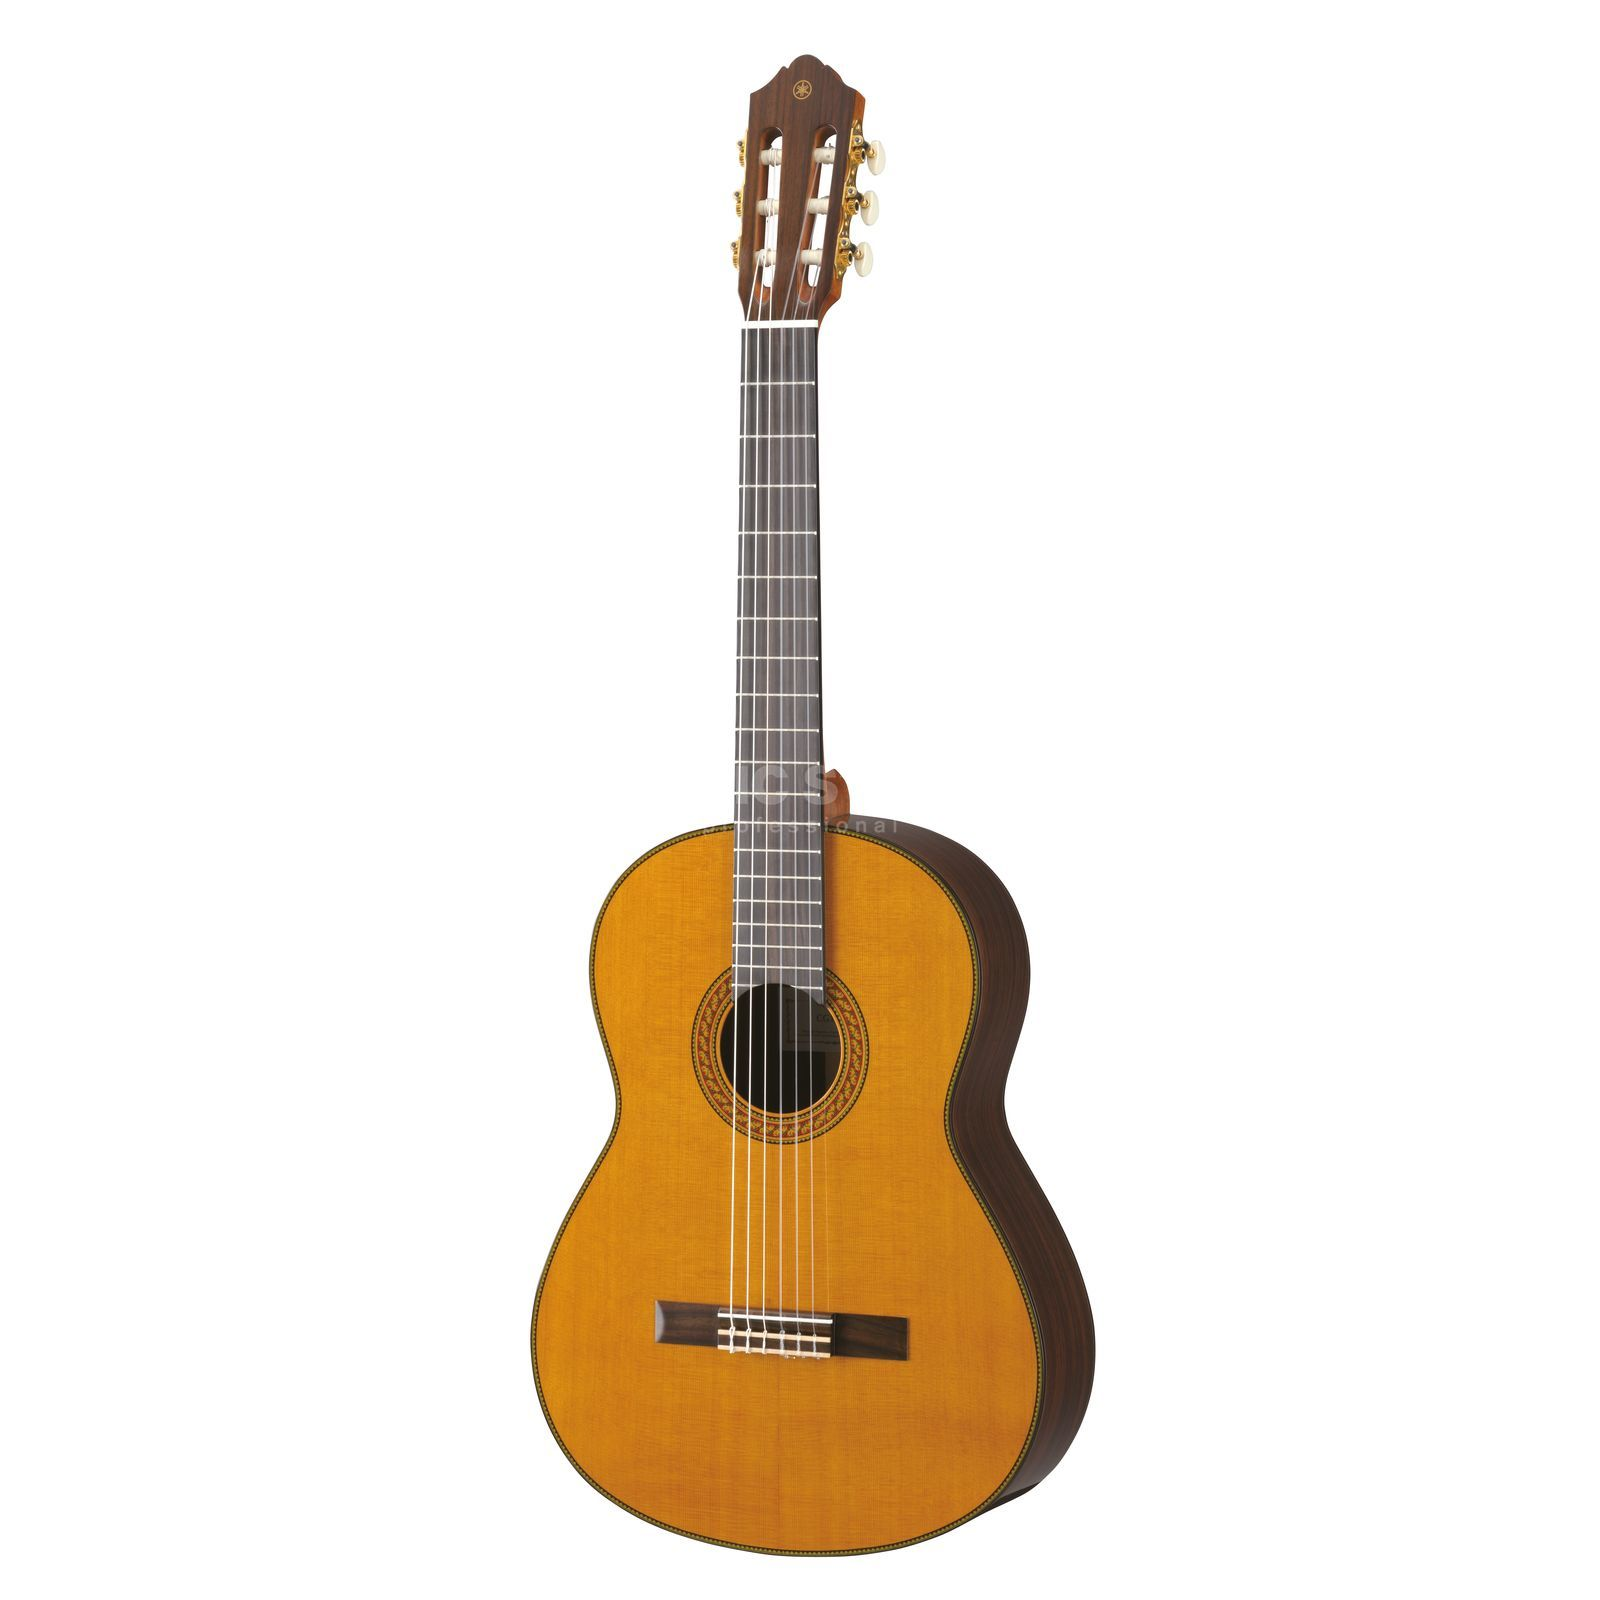 Yamaha CG192 Classical Acoustic Guita r, Natural   Produktbillede